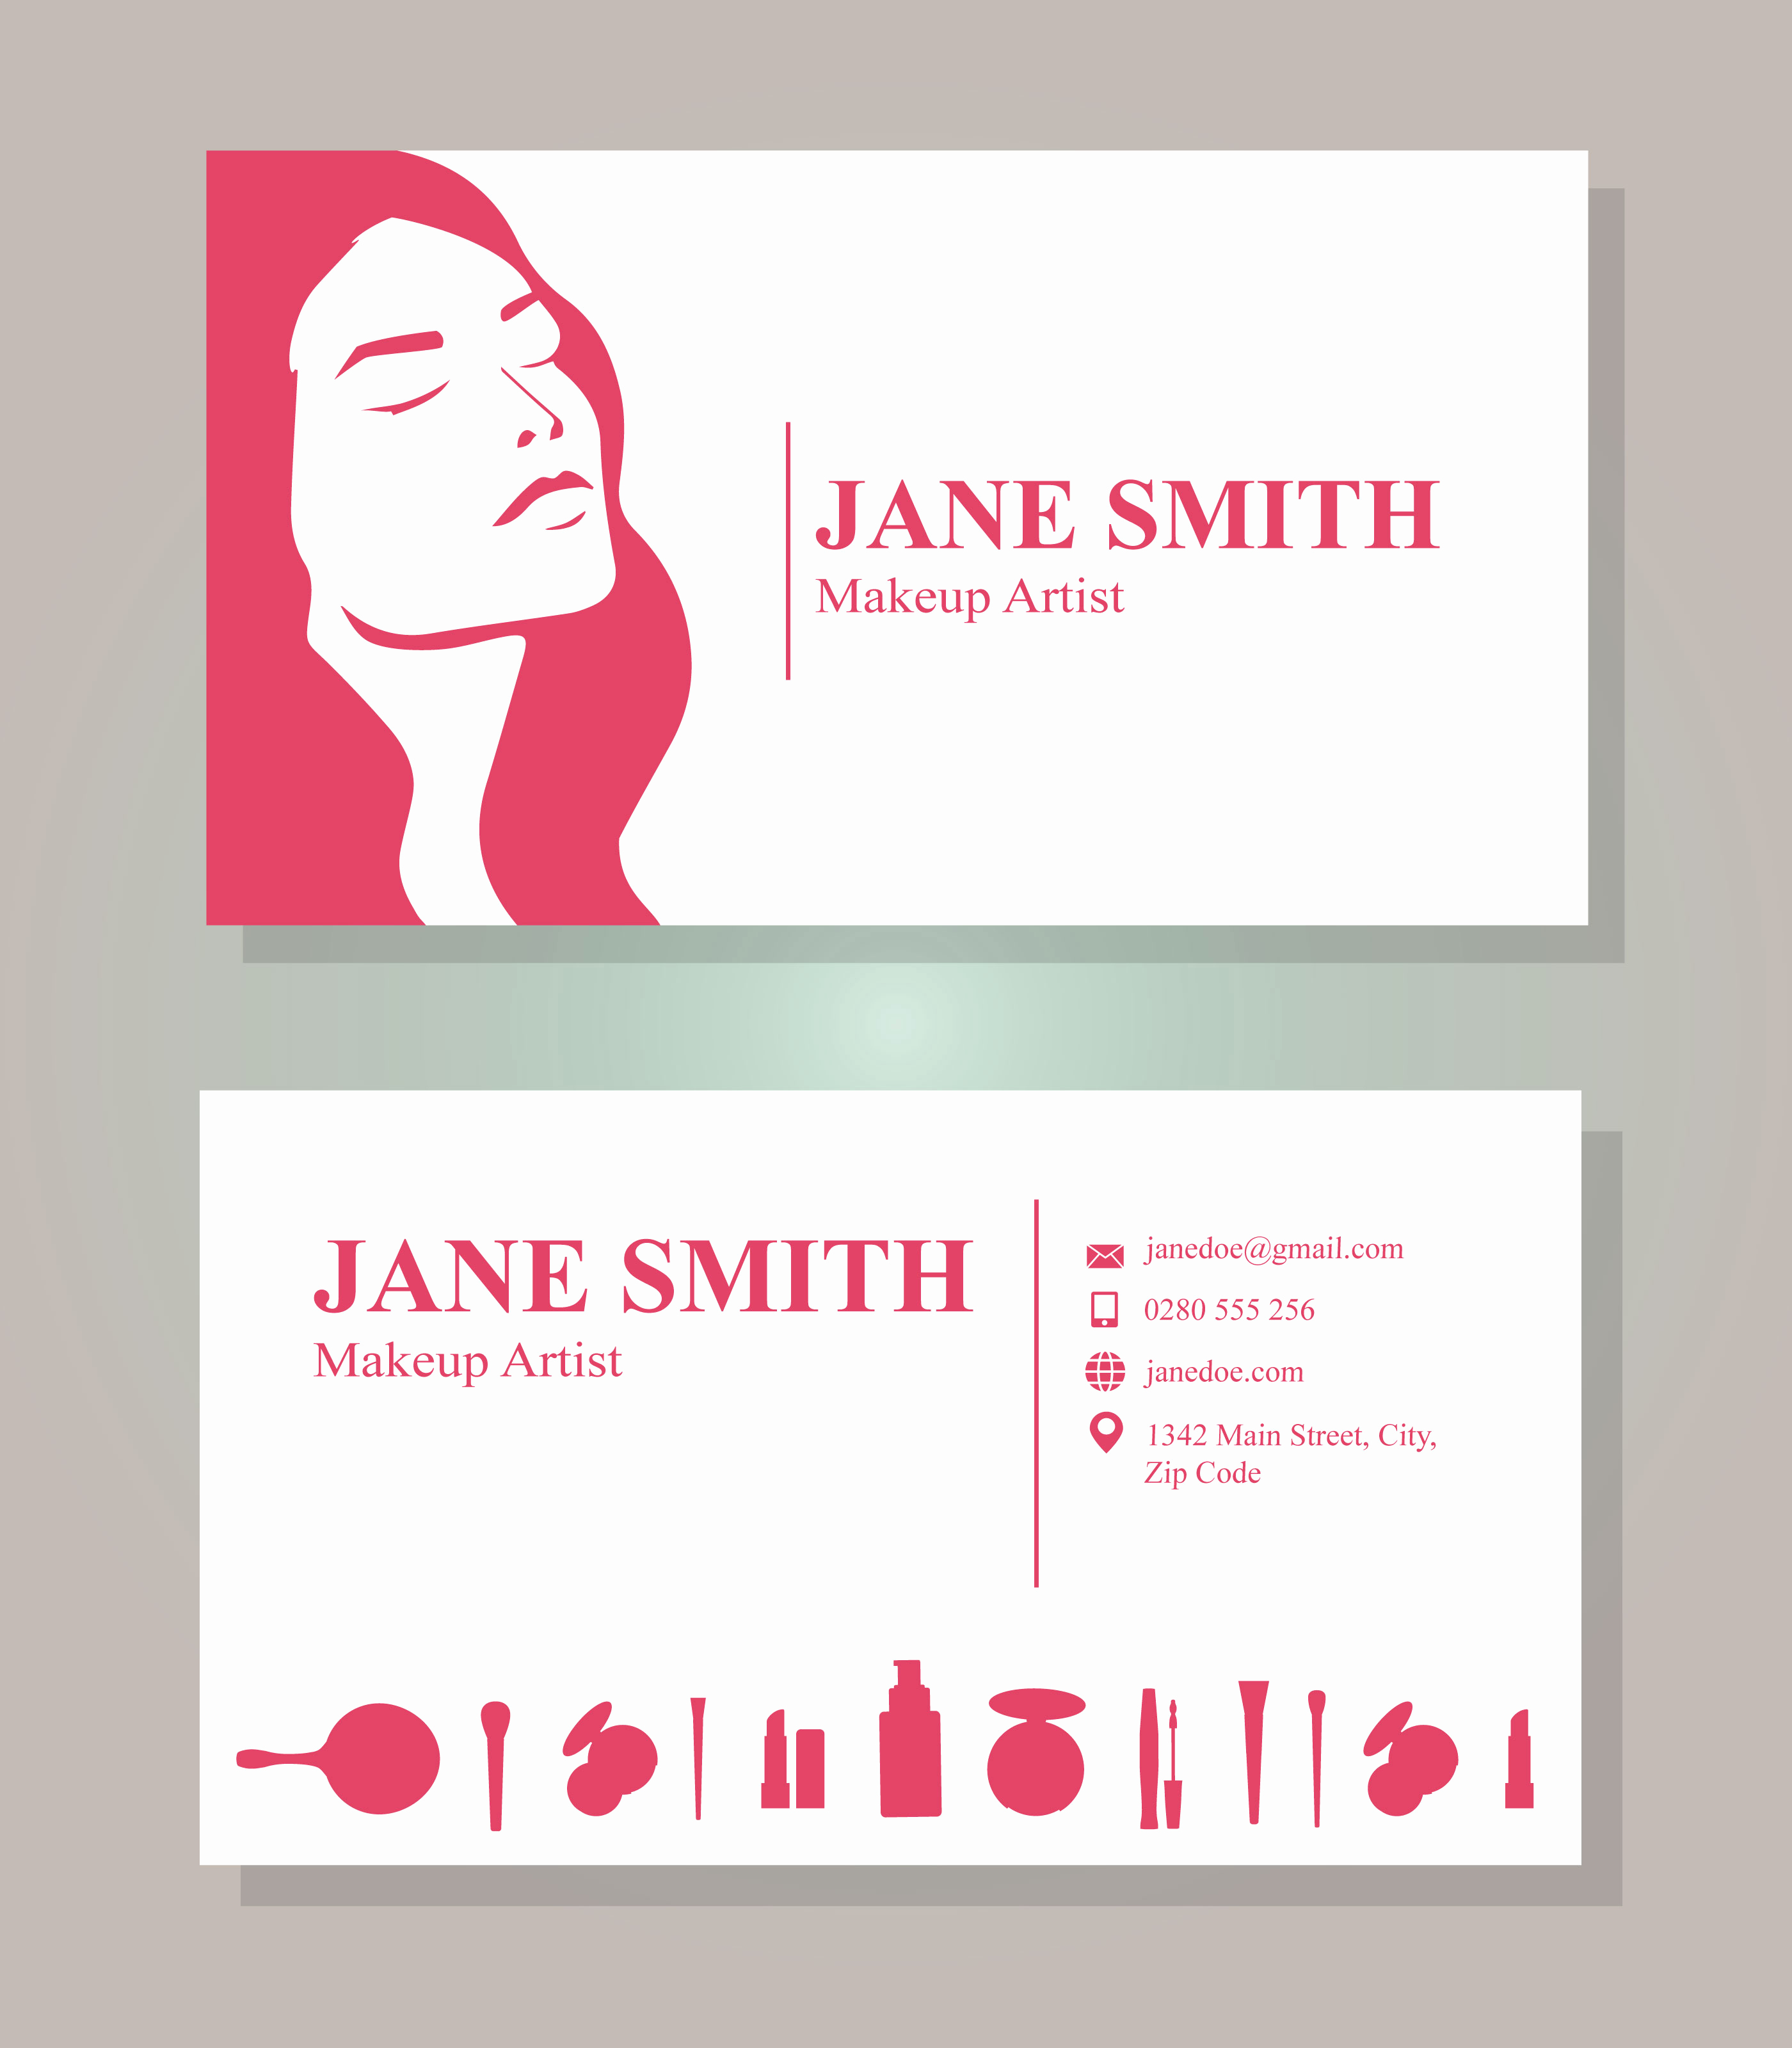 Business Cards for Artists Inspirational Makeup Artist Business Card Template Download Free